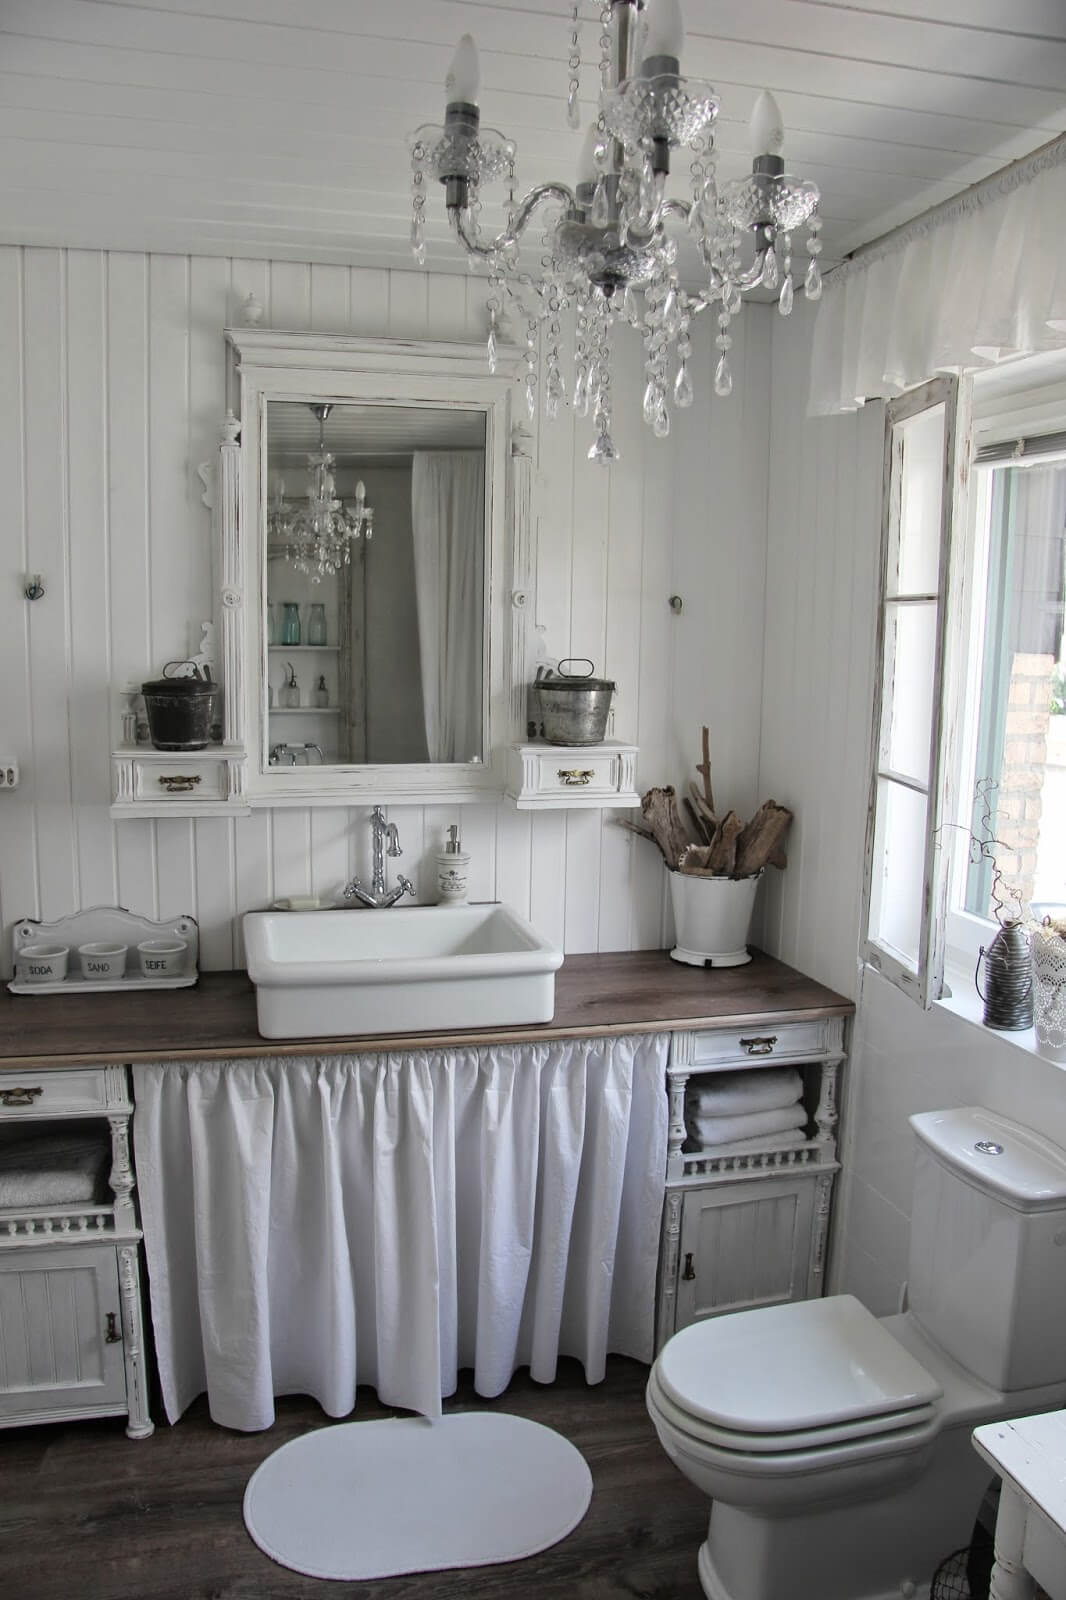 Best 15 Lovely Shabby Chic Bathroom Decor Ideas Style Motivation This Month